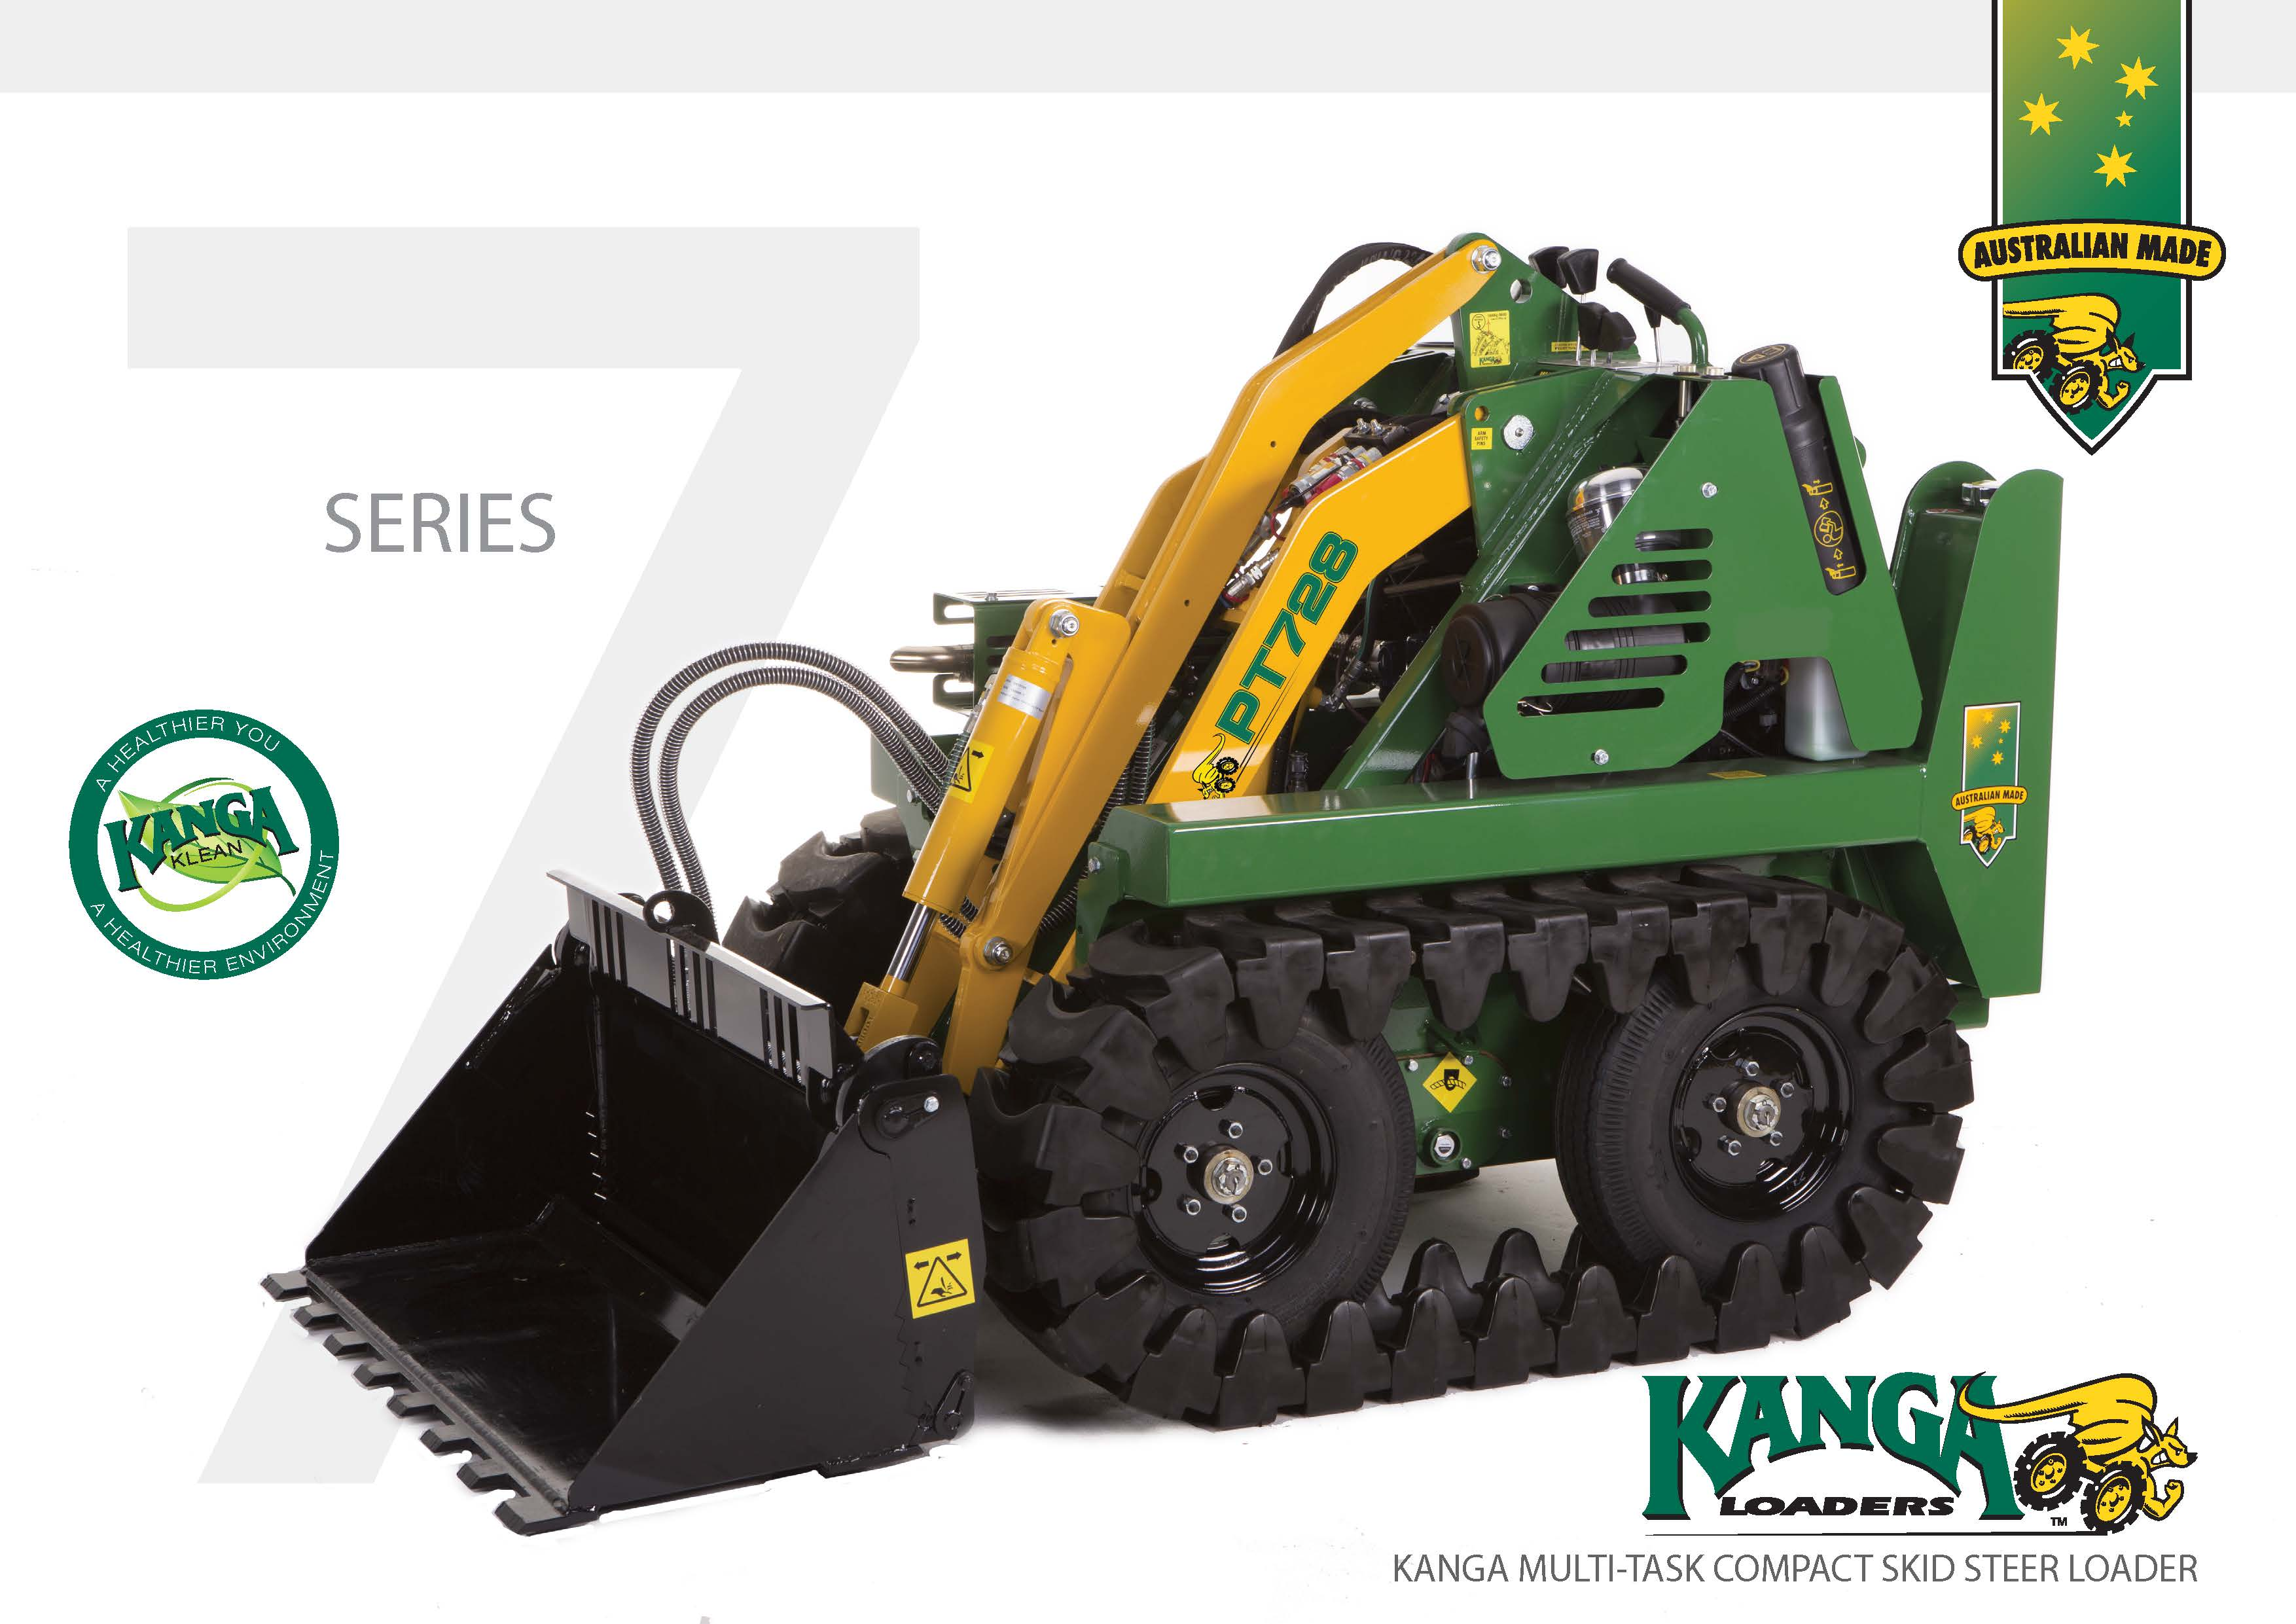 7 Series Mid Range Loader 2014_Page_1 kanga loaders 7 series diesel kanga loader wiring diagram at nearapp.co